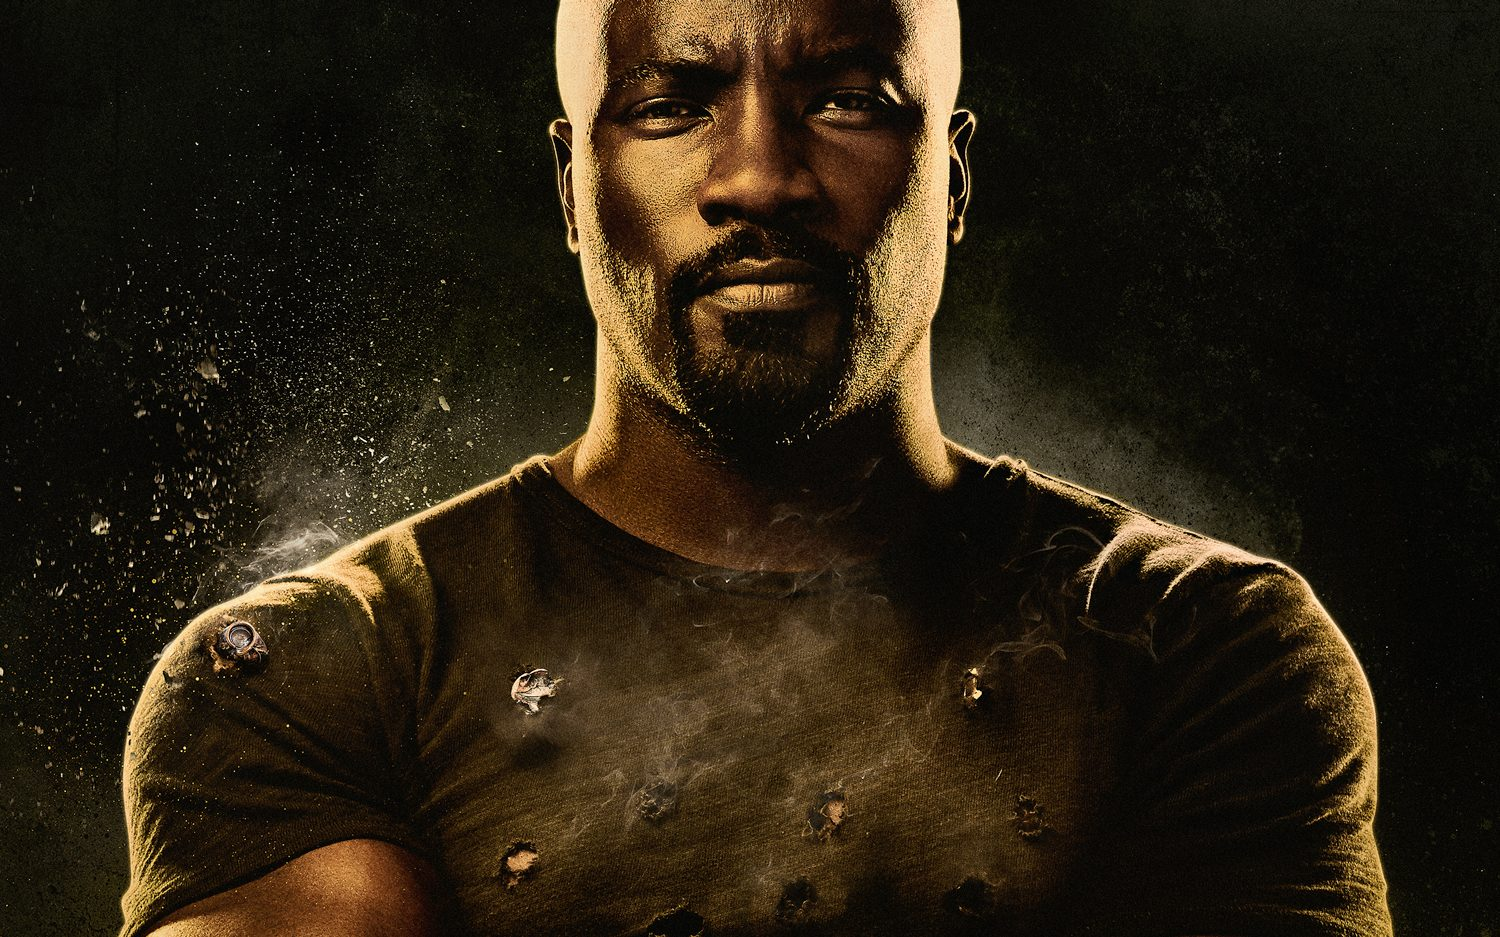 Luke Cage  spoiler free review  this could be Netflix s best Marvel     Mike Colter as Luke Cage